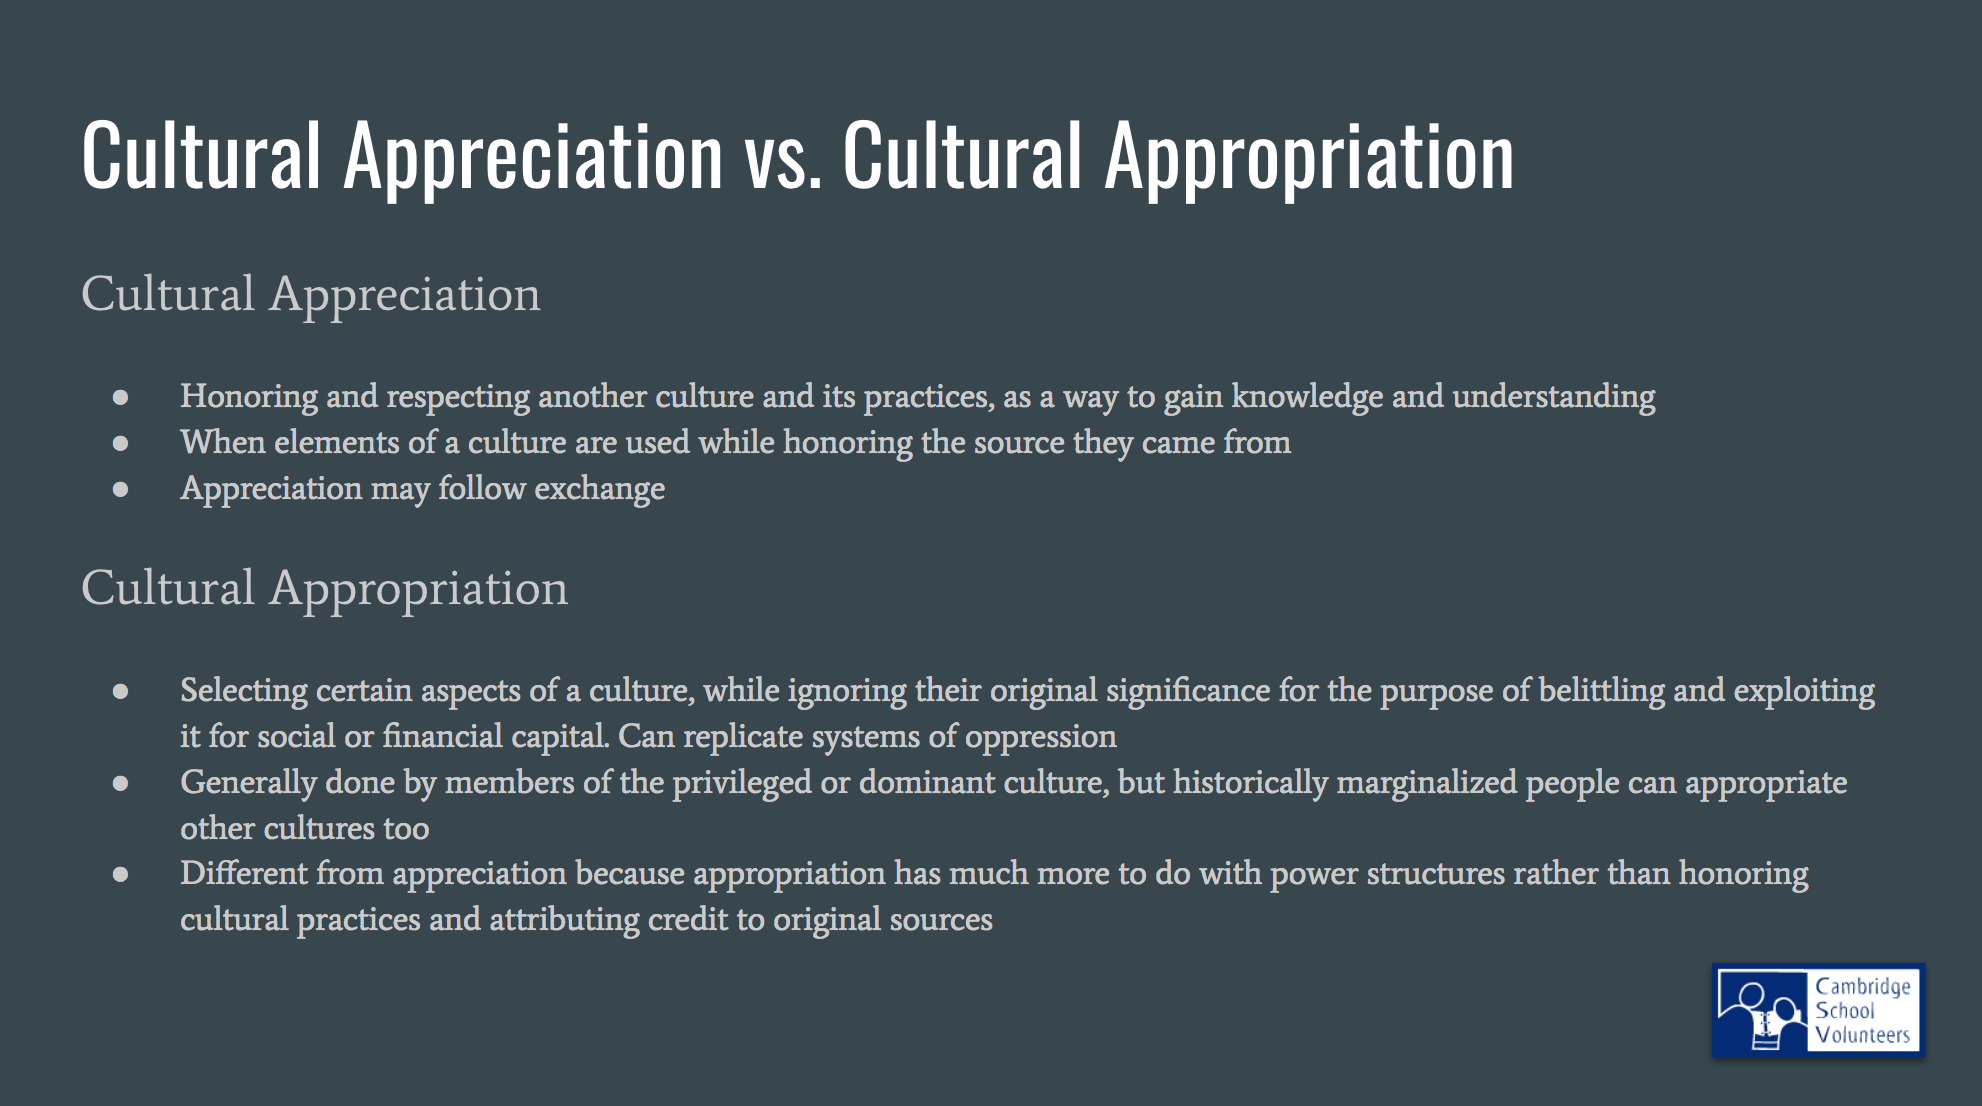 Bullet points with text with examples of cultural appreciation contrasted with examples of cultural appropriation